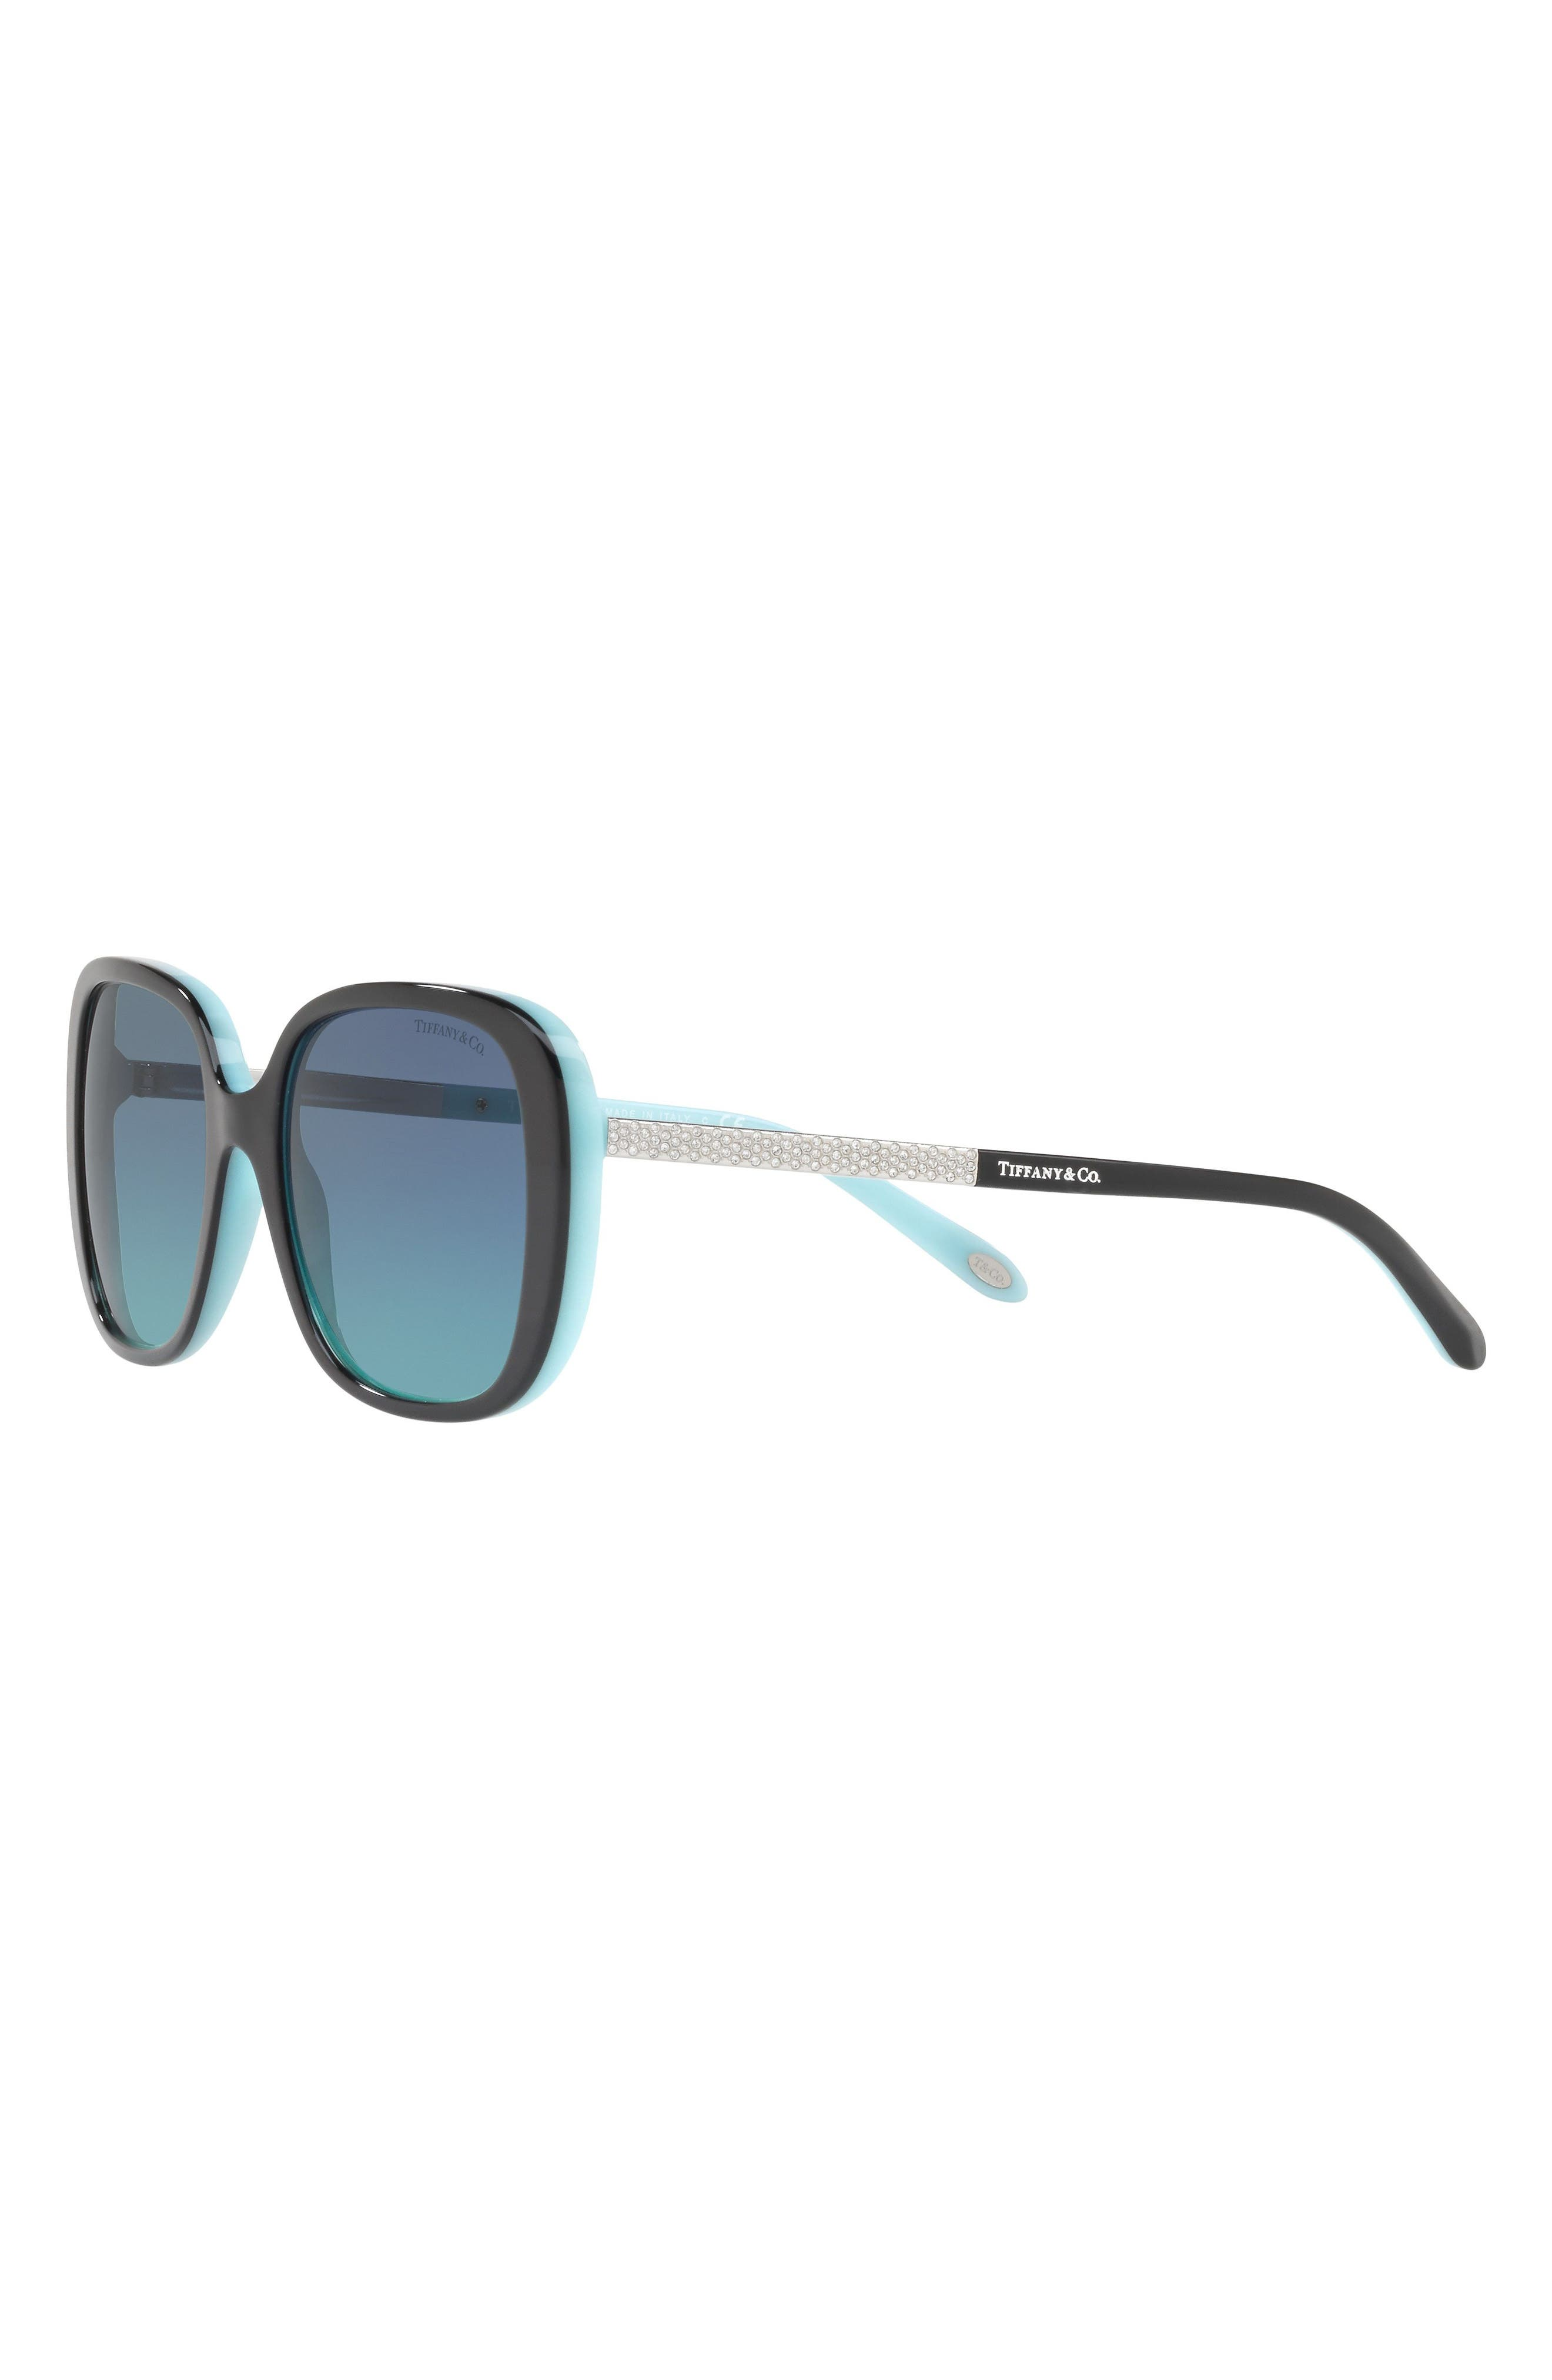 54mm Gradient Sunglasses,                             Alternate thumbnail 4, color,                             BLACK/ BLUE